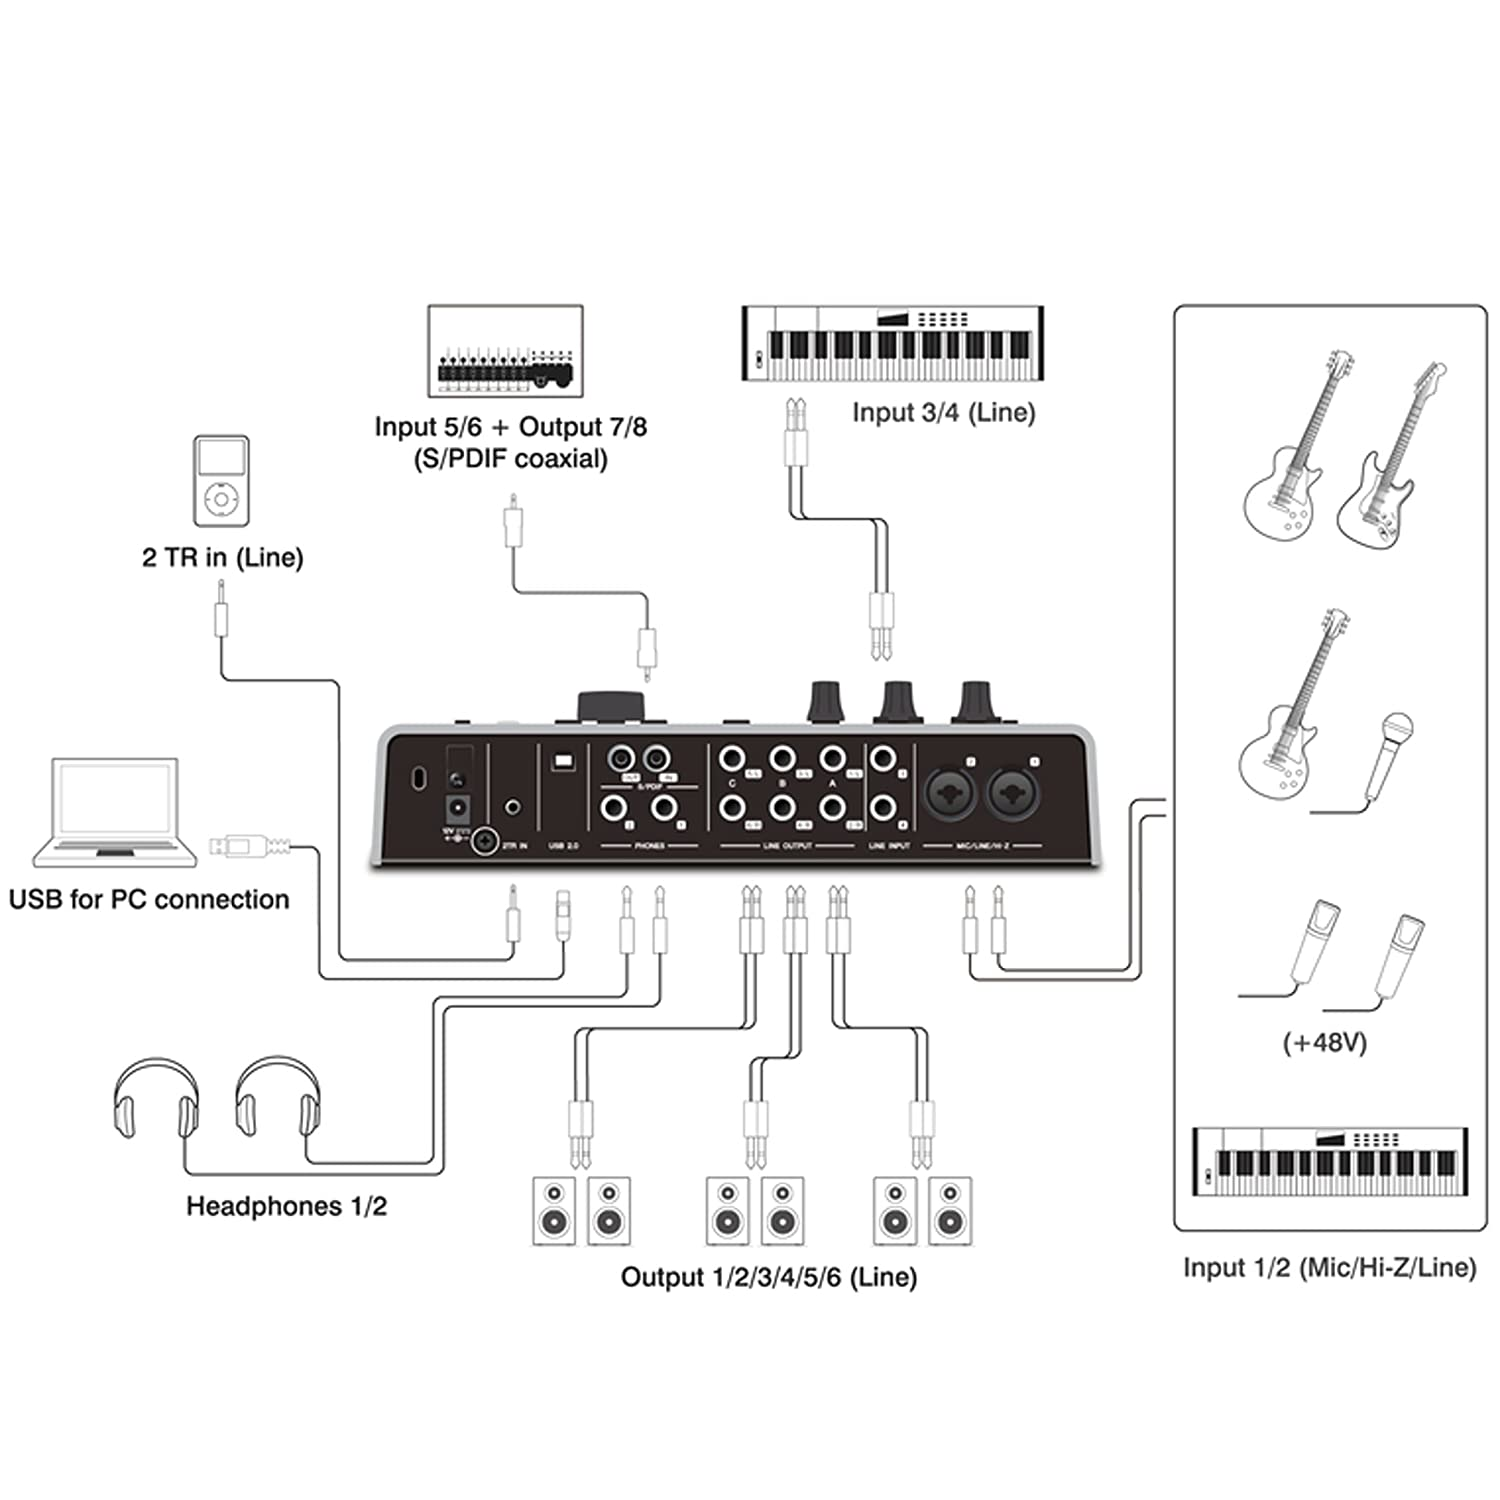 s pdif wiring diagram home studio wiring library simple home recording studio setup diagram